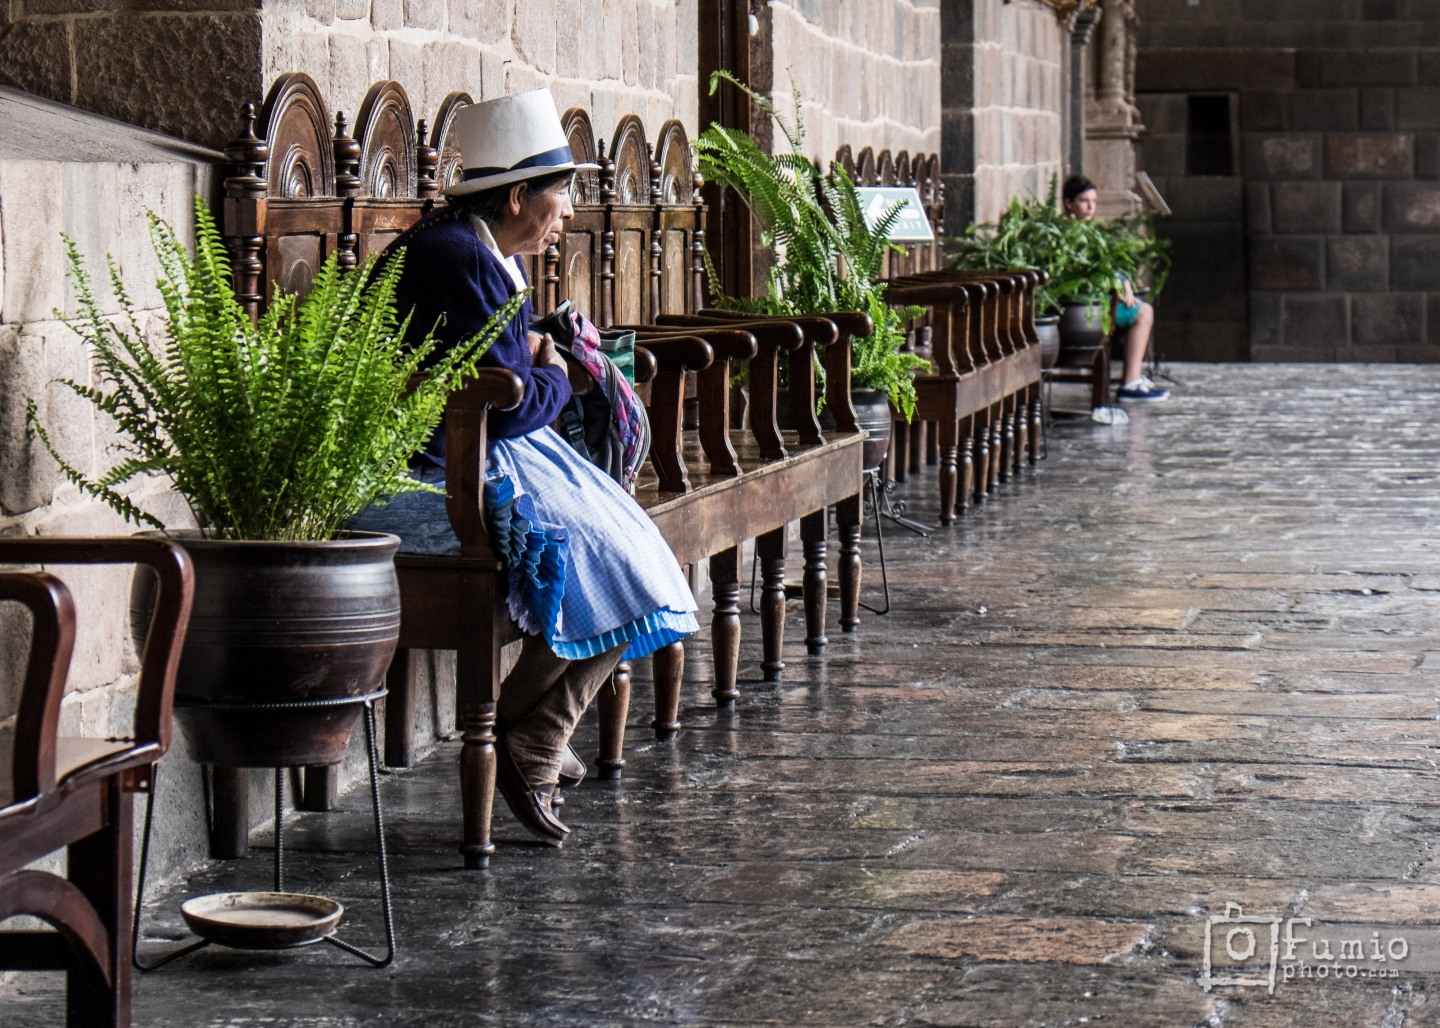 60 Frames of Cusco-20